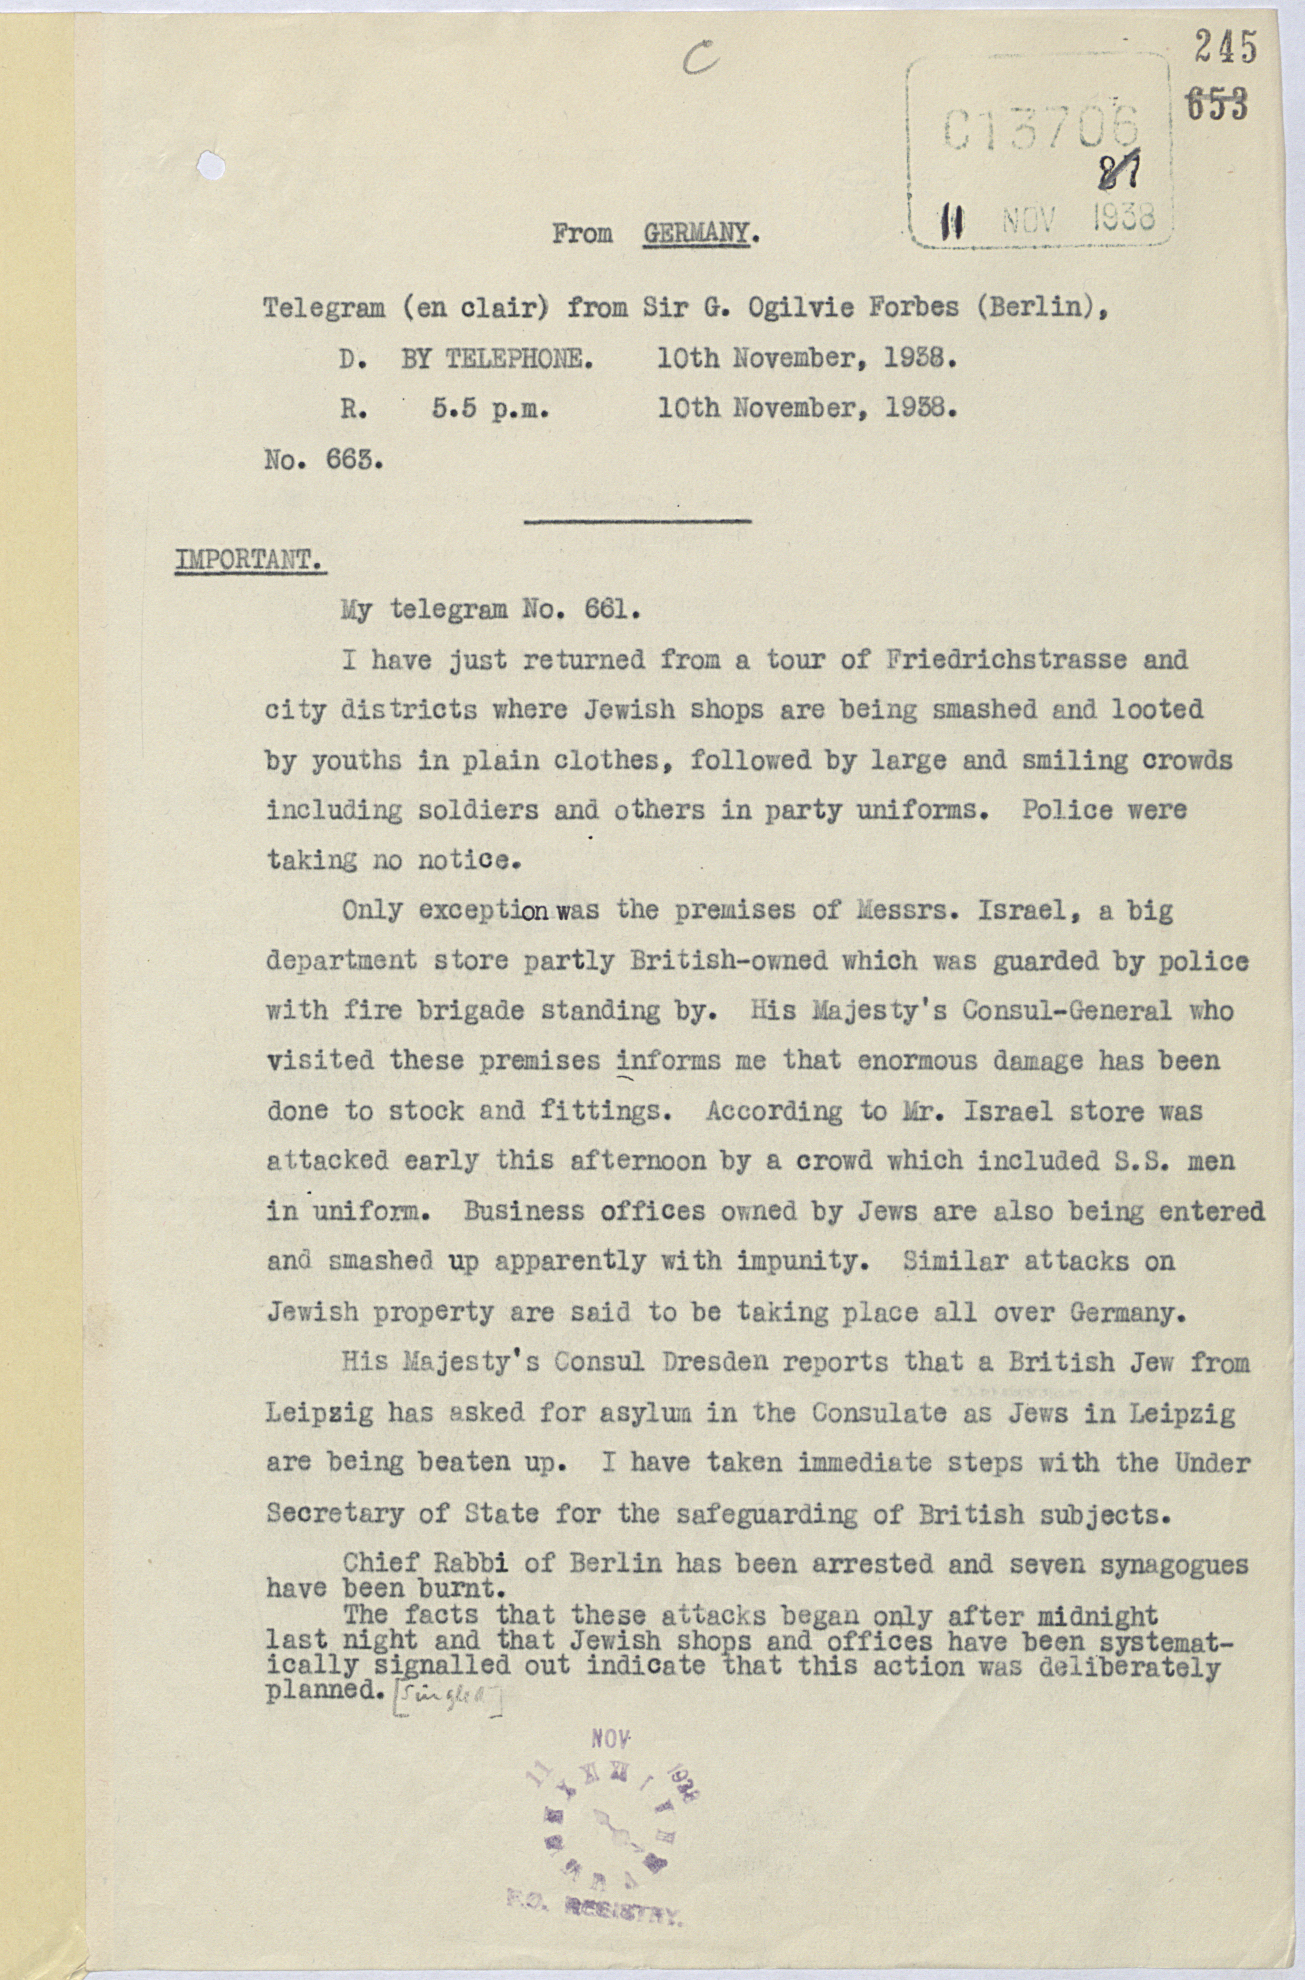 Telegram regarding Kristallnacht 10 November 1938